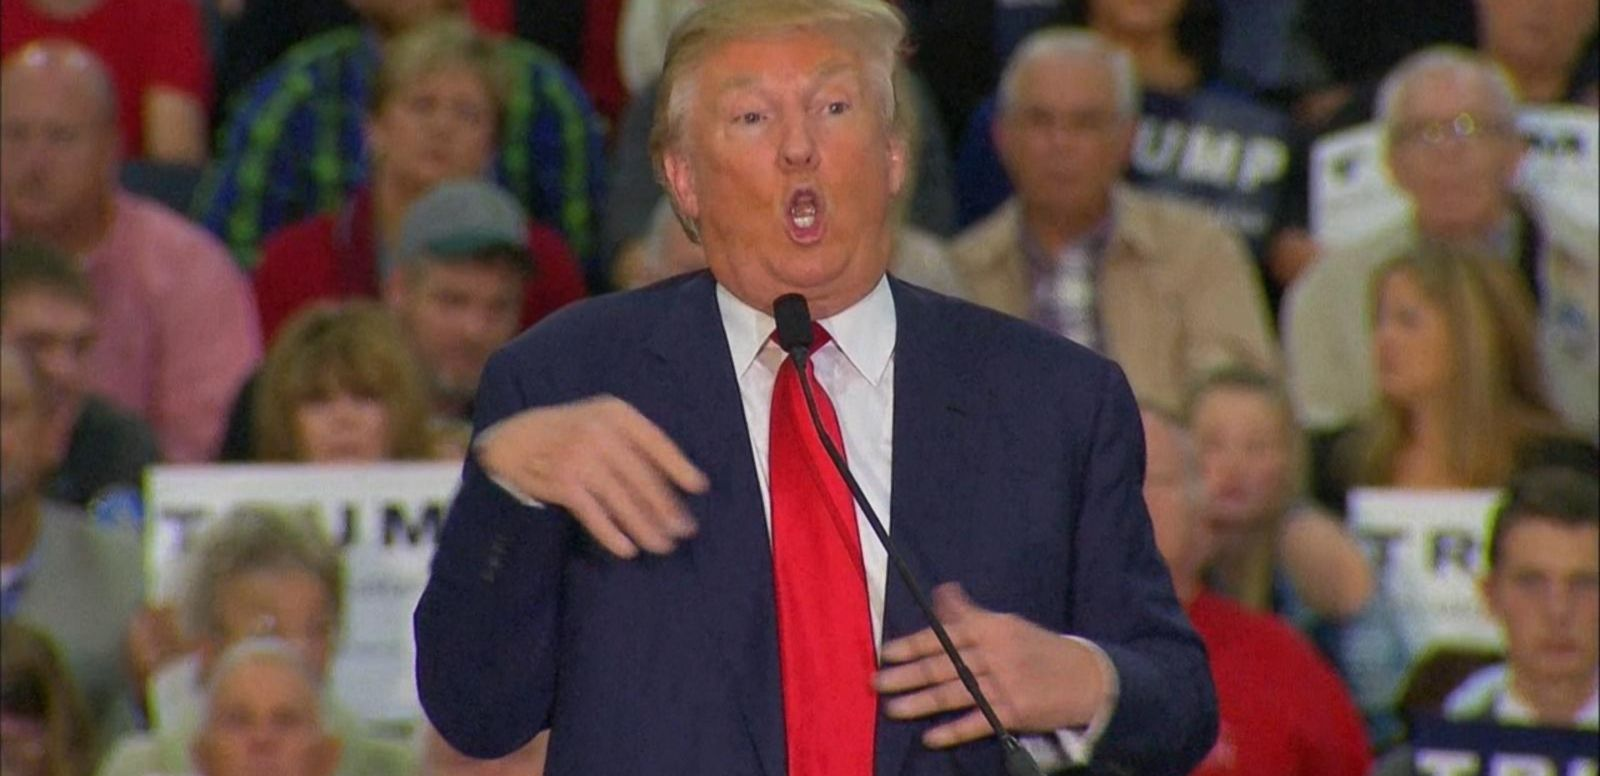 VIDEO: Donald Trump Accused of Mocking Reporter with Disability